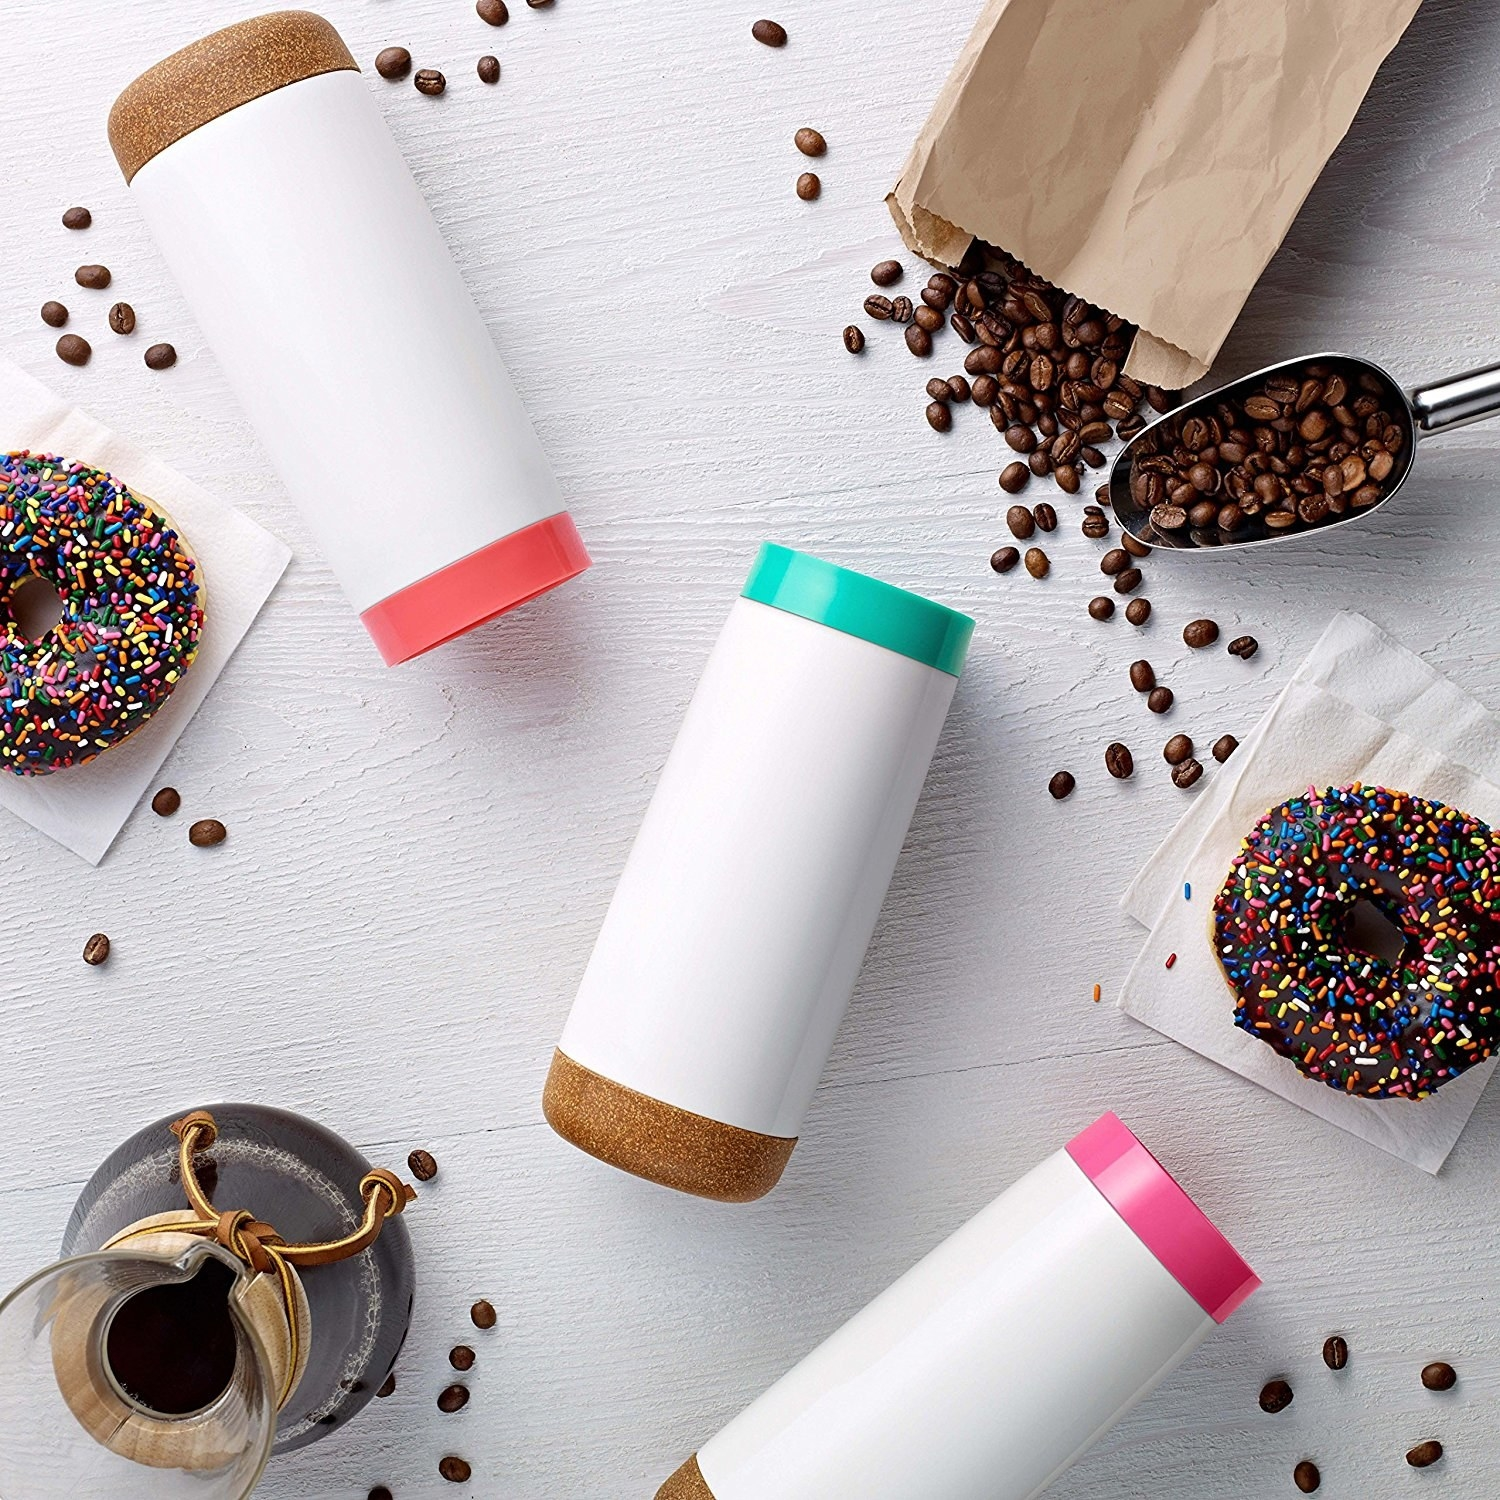 20 Of The Best Travel Mugs You Can Get On Amazon